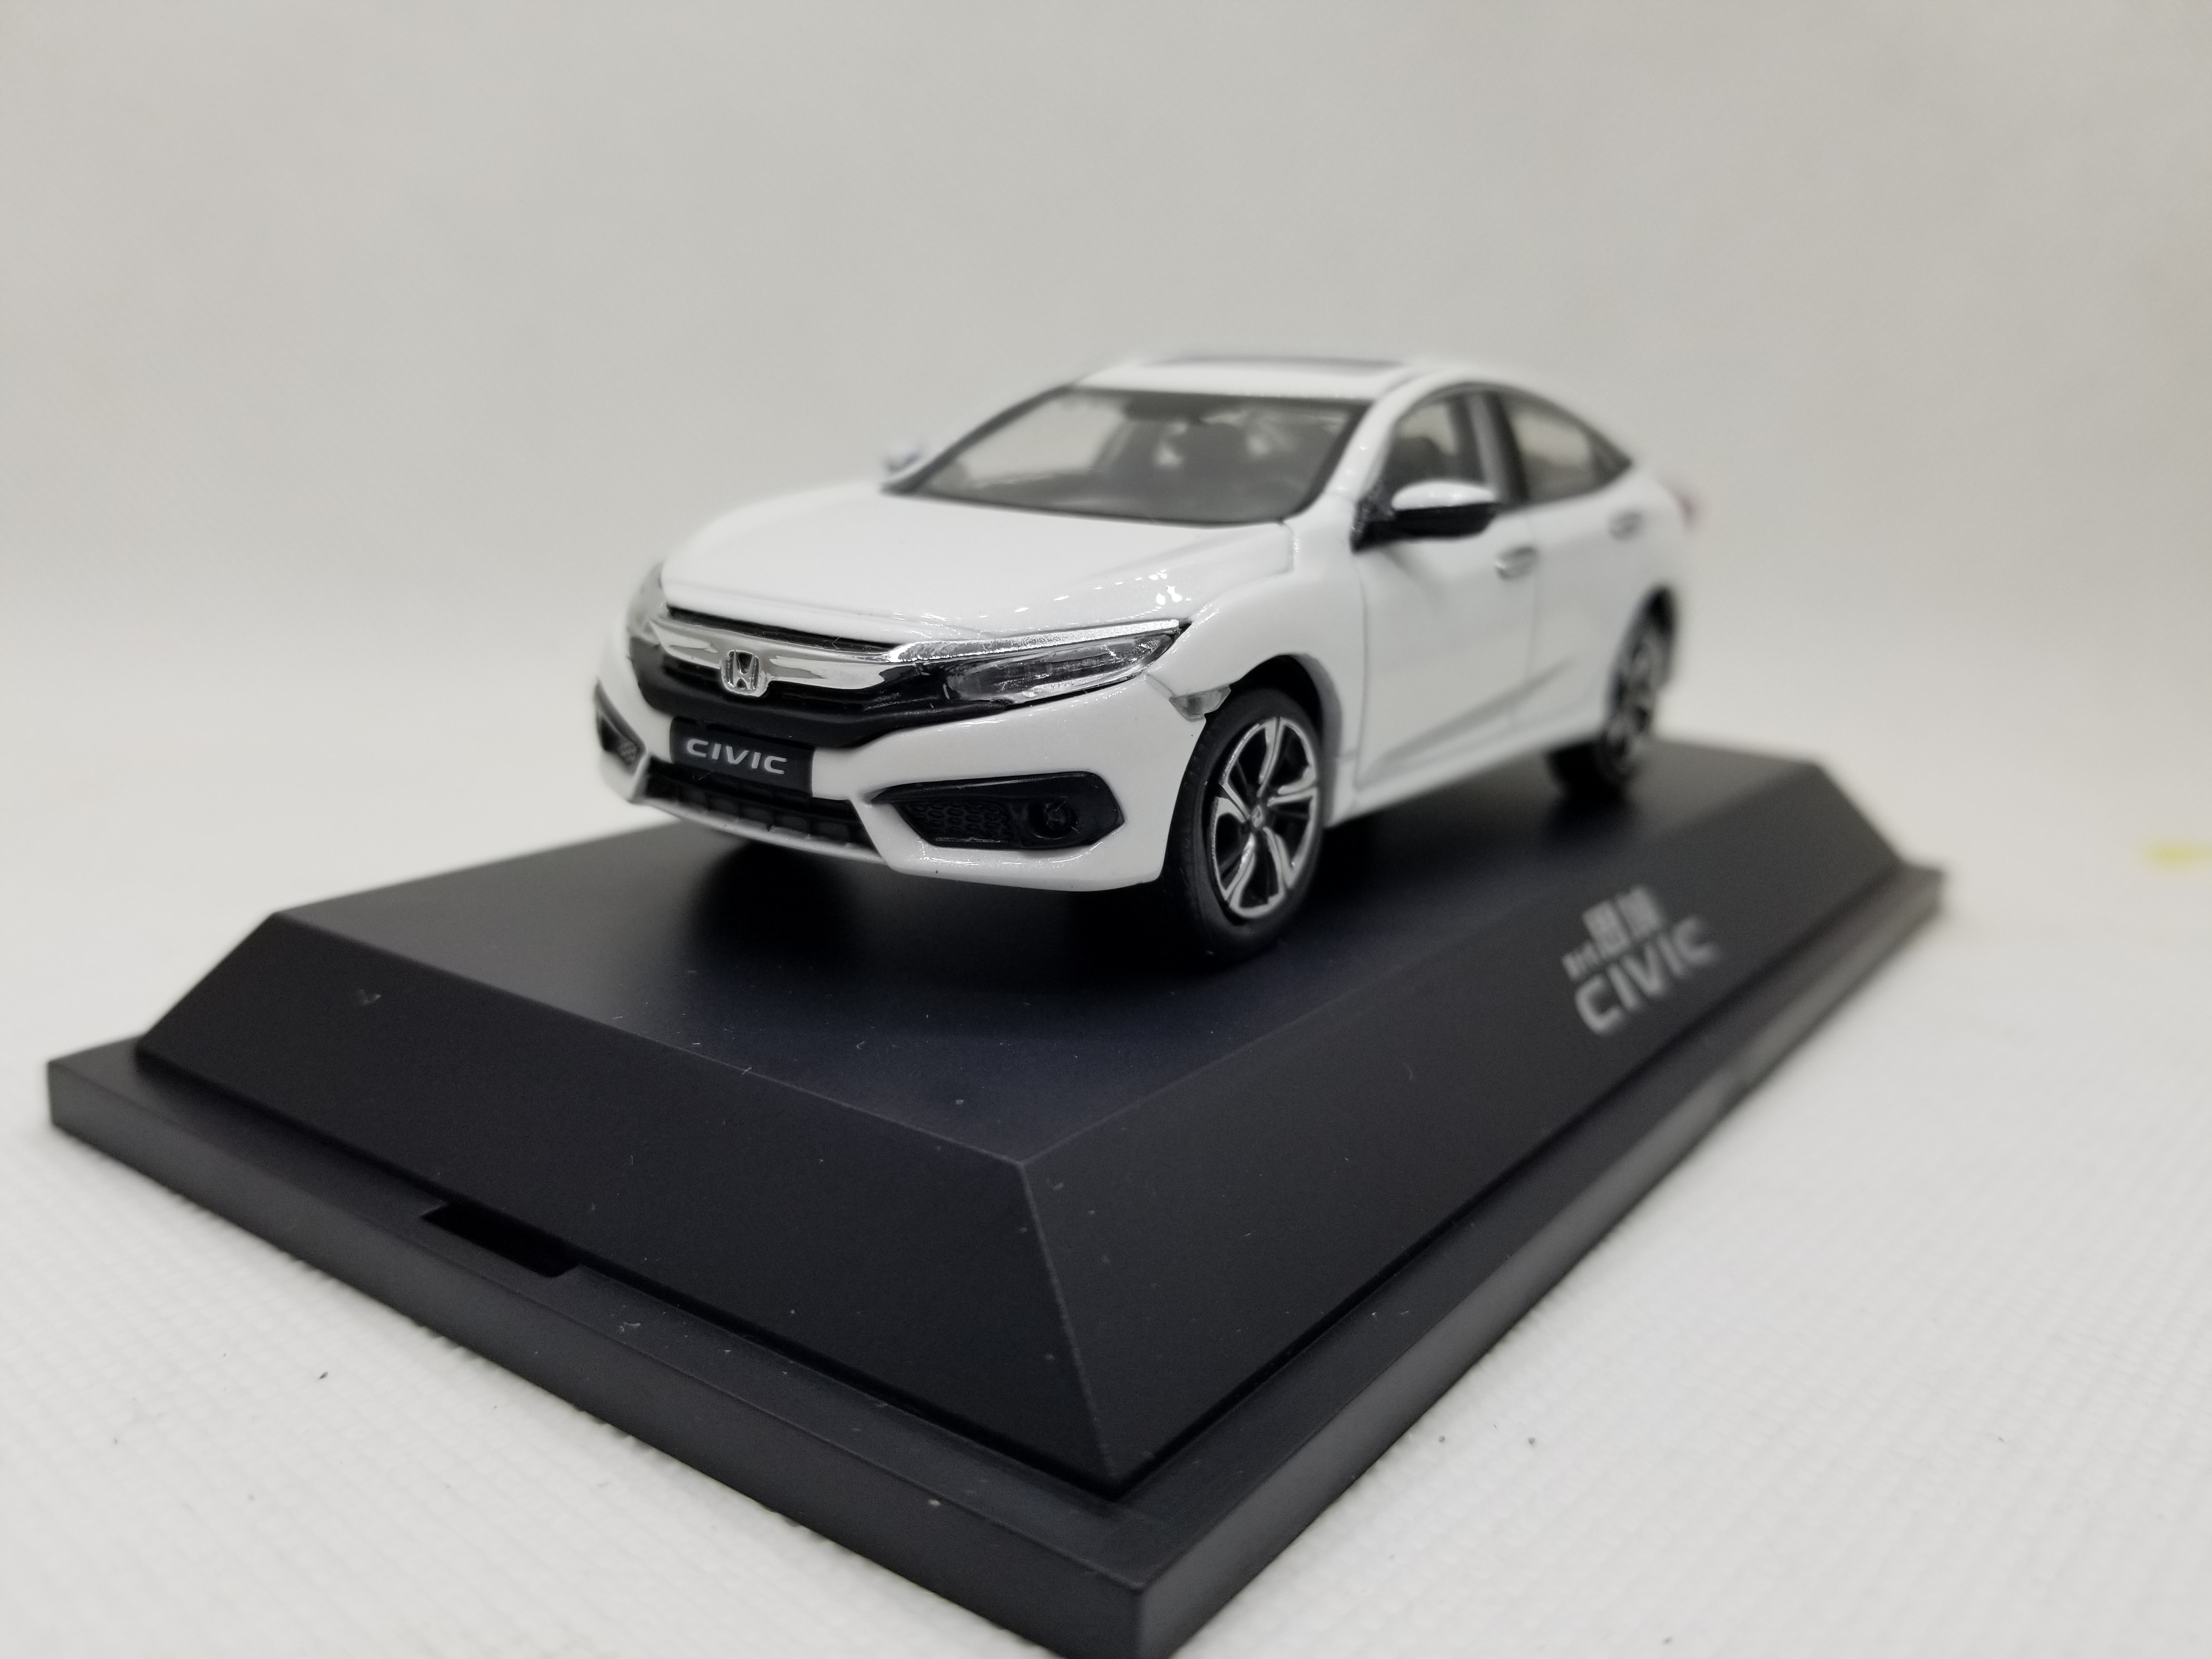 1:43 Diecast Model for Honda Civic 2016 MK10 White Alloy Toy Car Miniature Collection Gifts